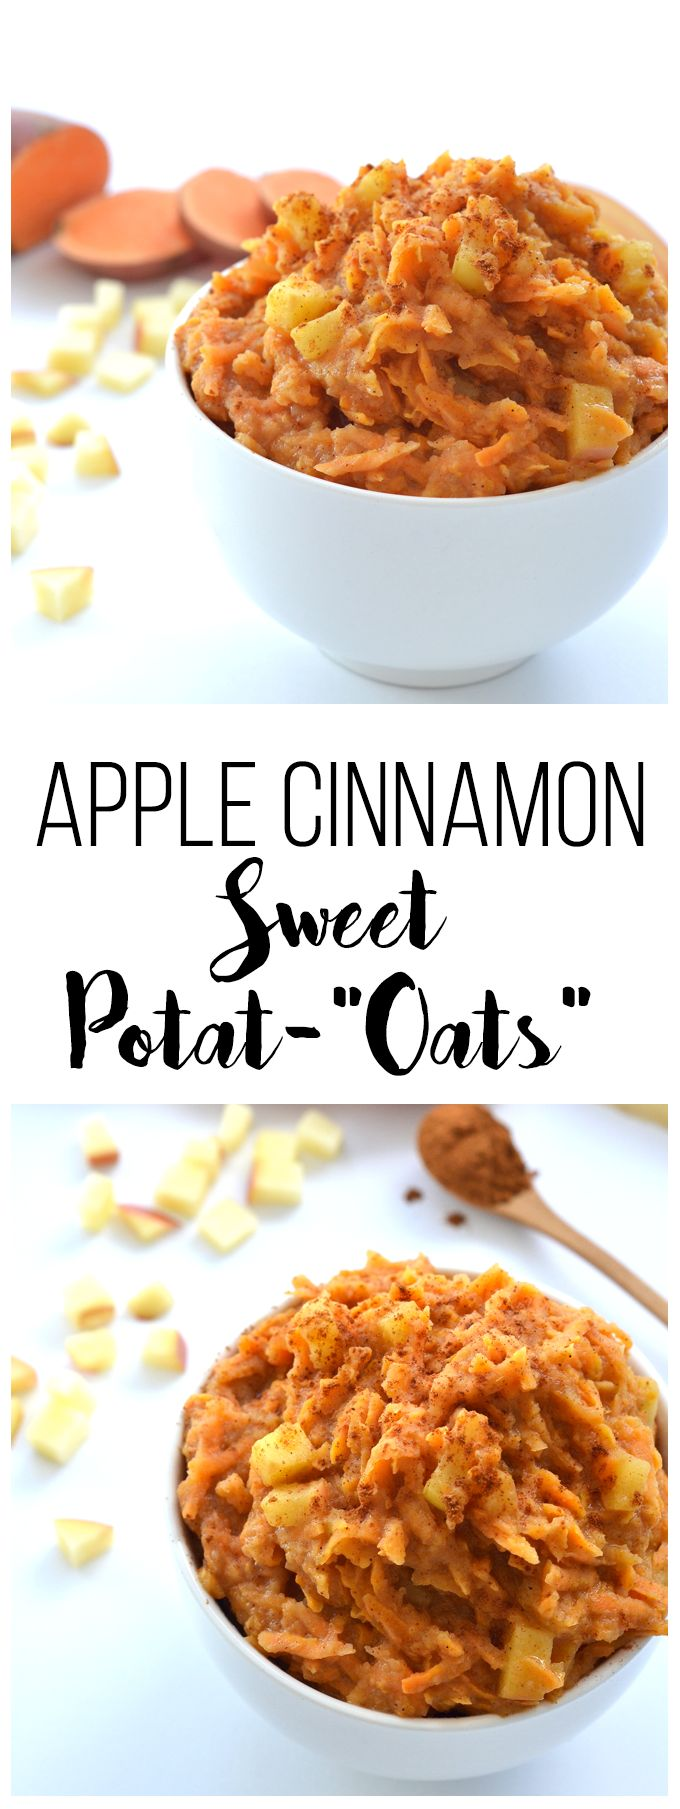 """These Apple Cinnamon Sweet Potat-""""oats"""" are the perfect Paleo & Whole30 breakfast option or oat alternative!"""